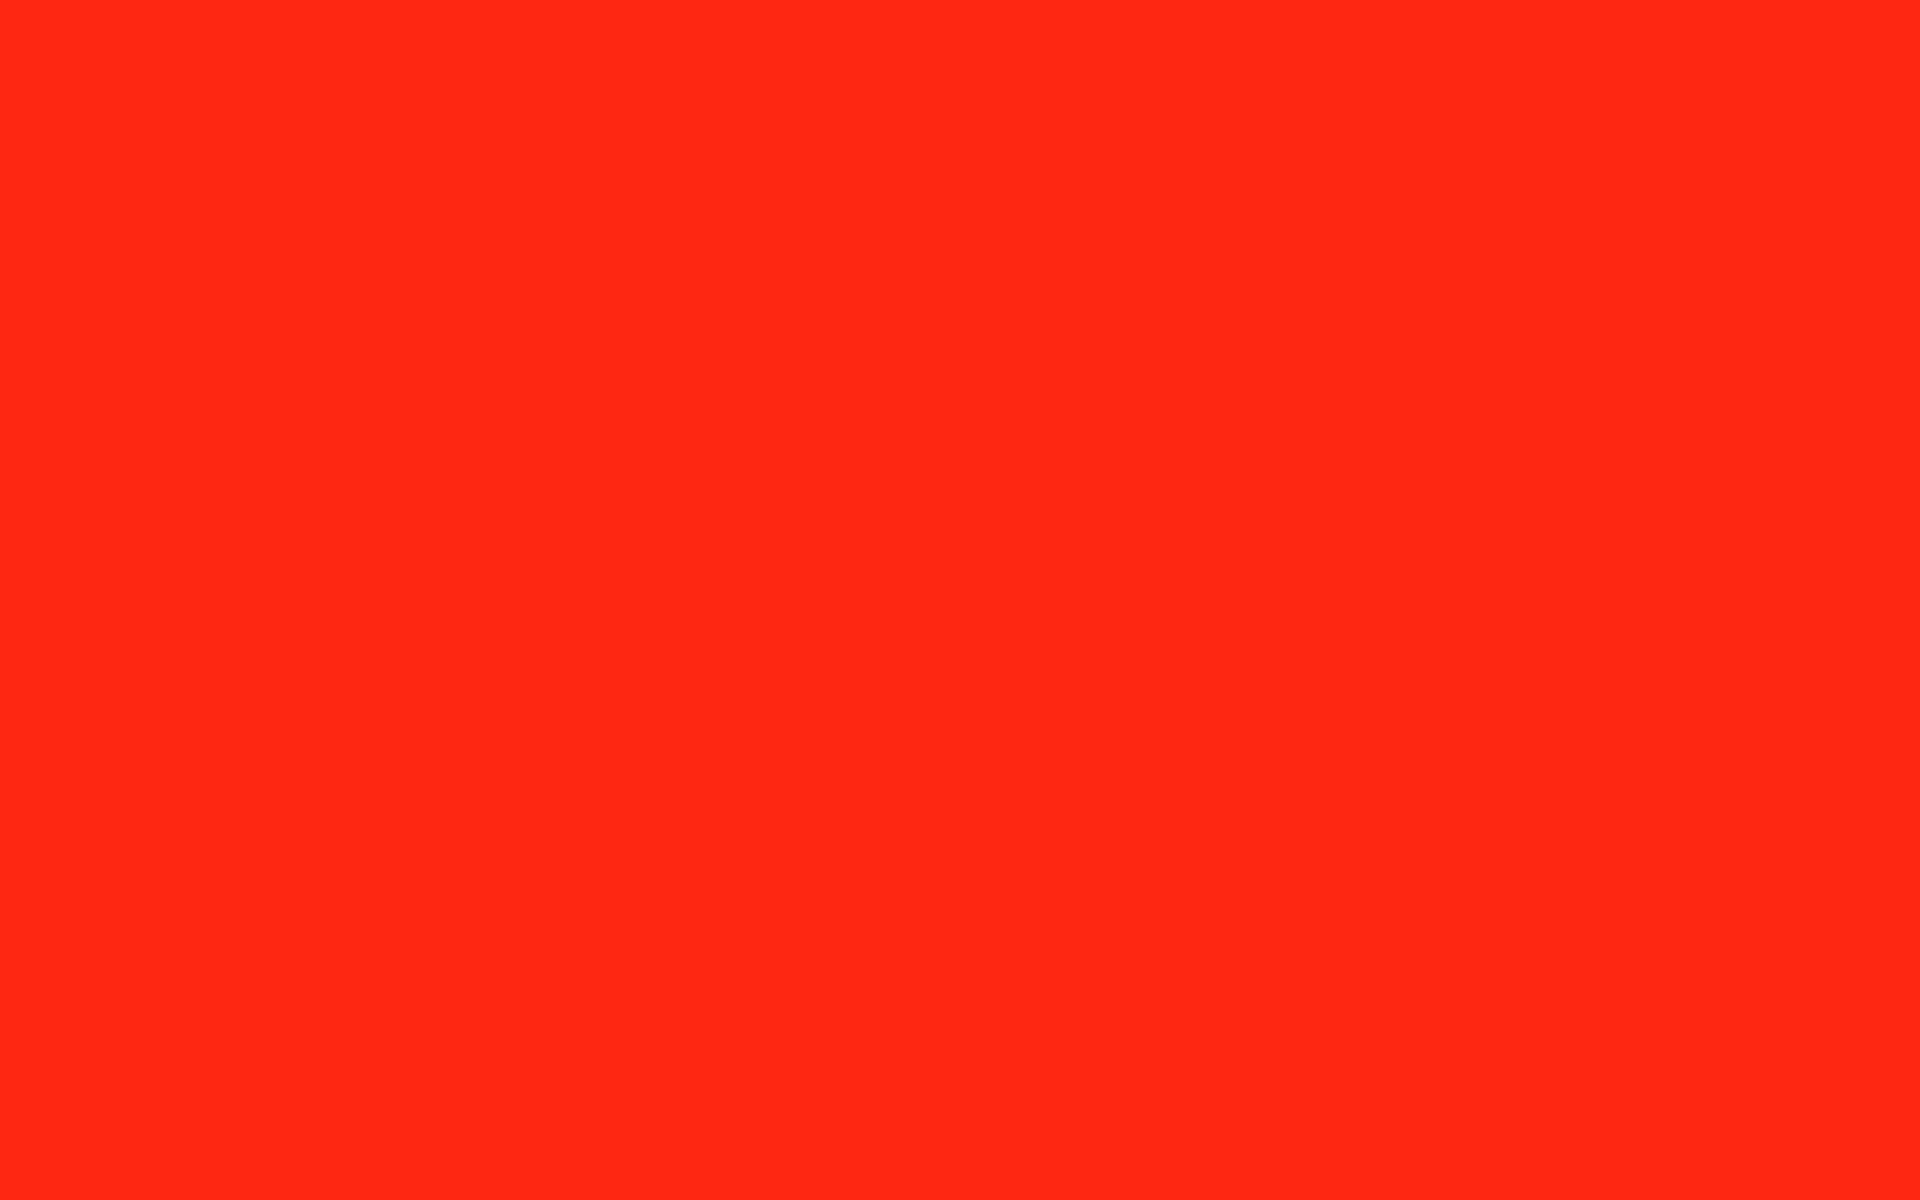 1920x1200 Red RYB Solid Color Background